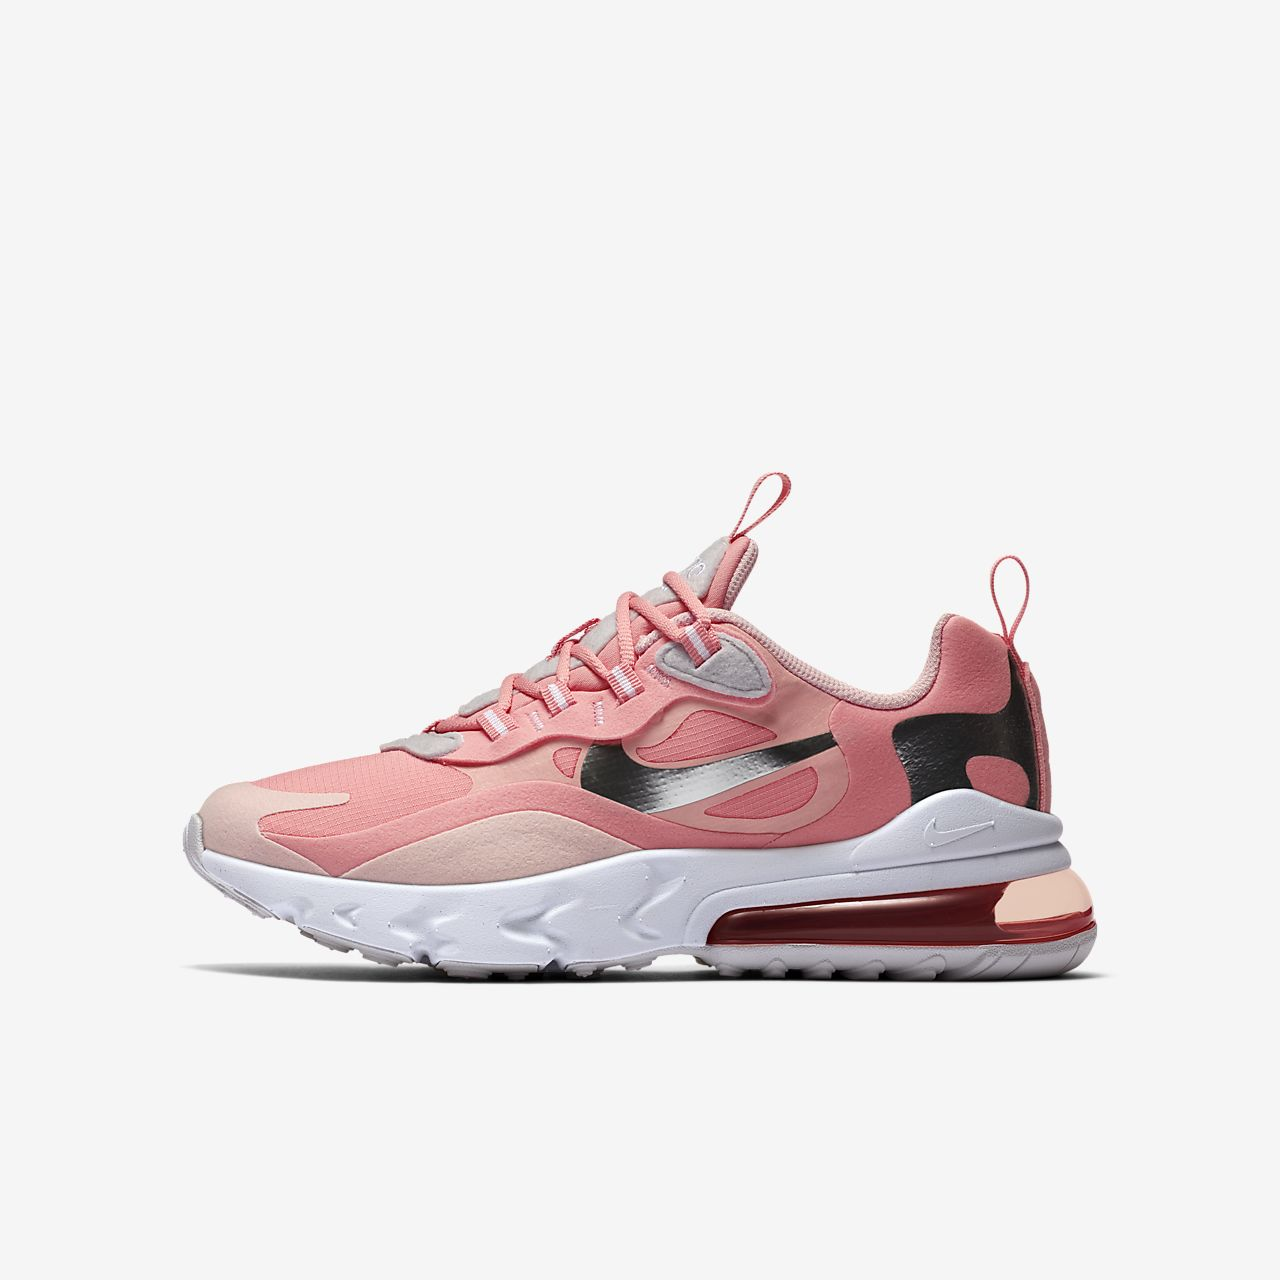 Depender de Armario ventilación  Nike Air Max 270 React Older Kids' Shoe. Nike IE